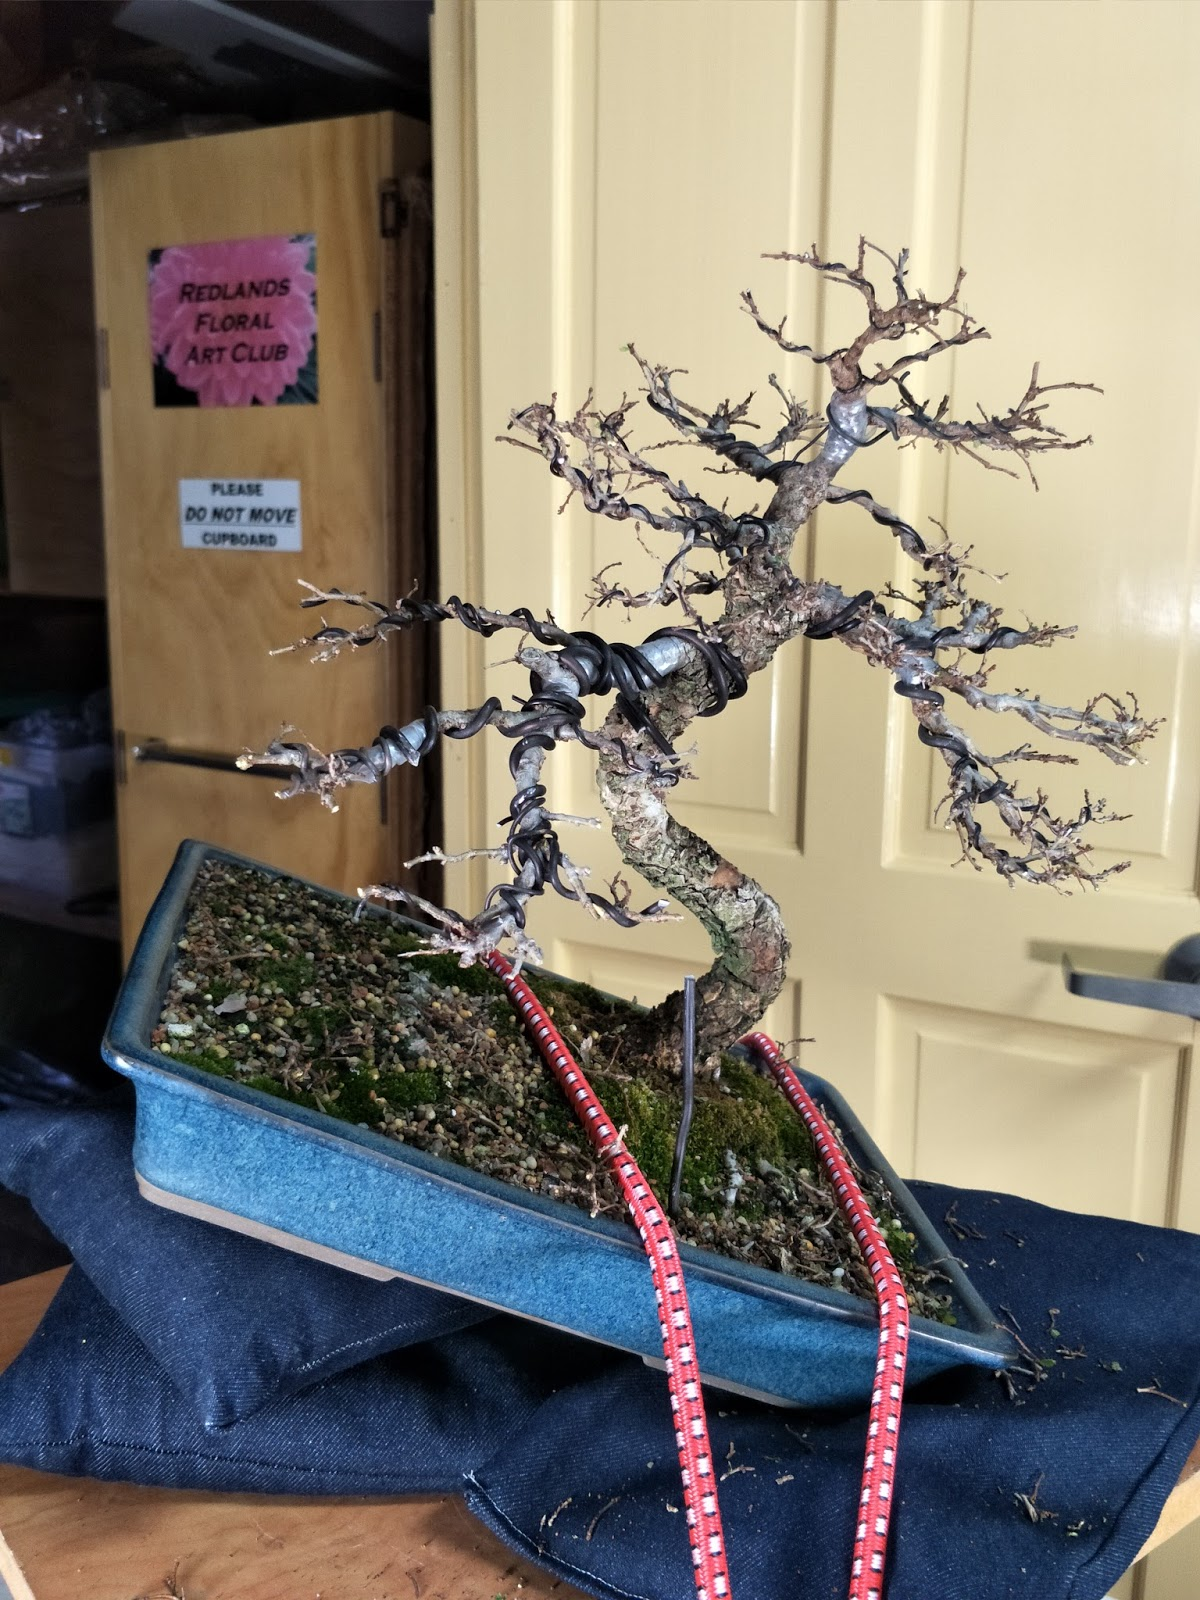 Pleasant Redlands Bonsai Society July 2017 Wiring Cloud Oideiuggs Outletorg